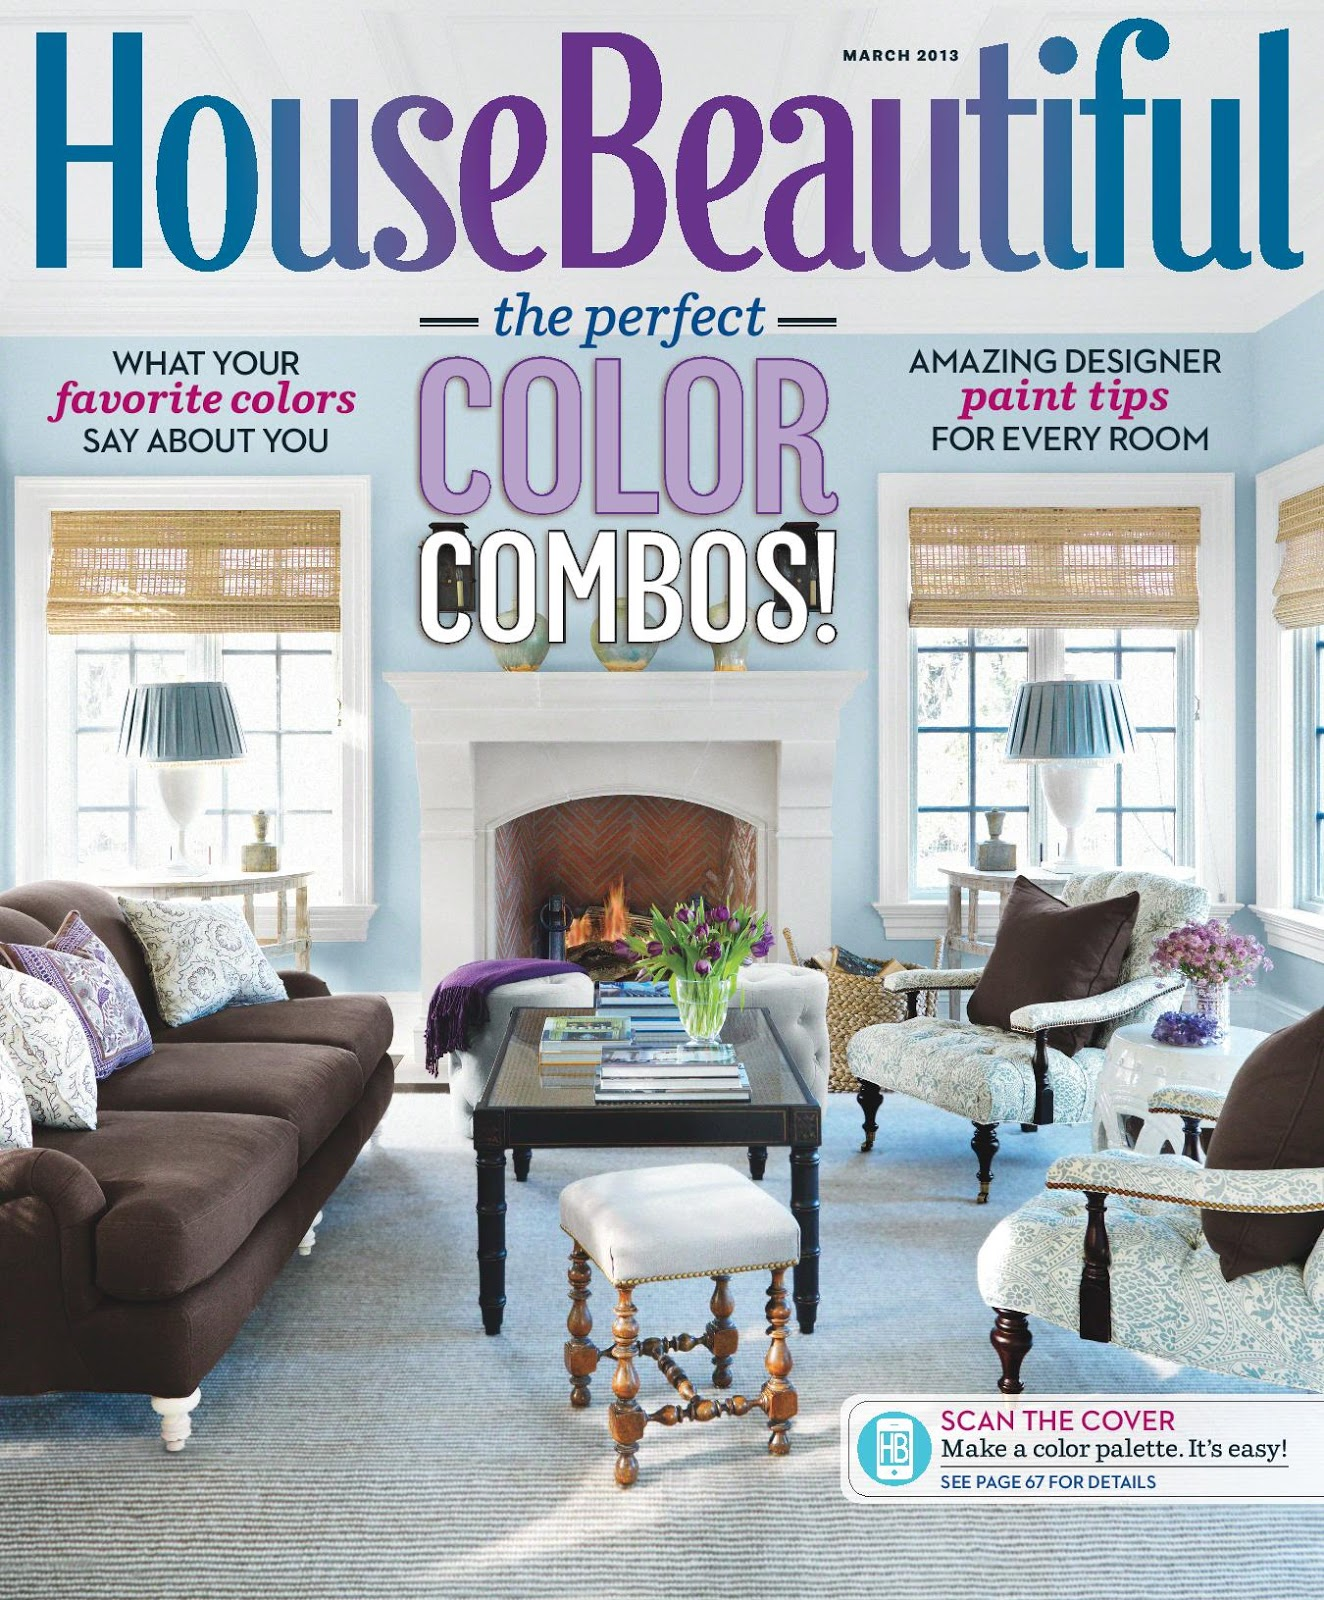 Stylebeat Score A Hot Seat In Hollywood House Beautiful